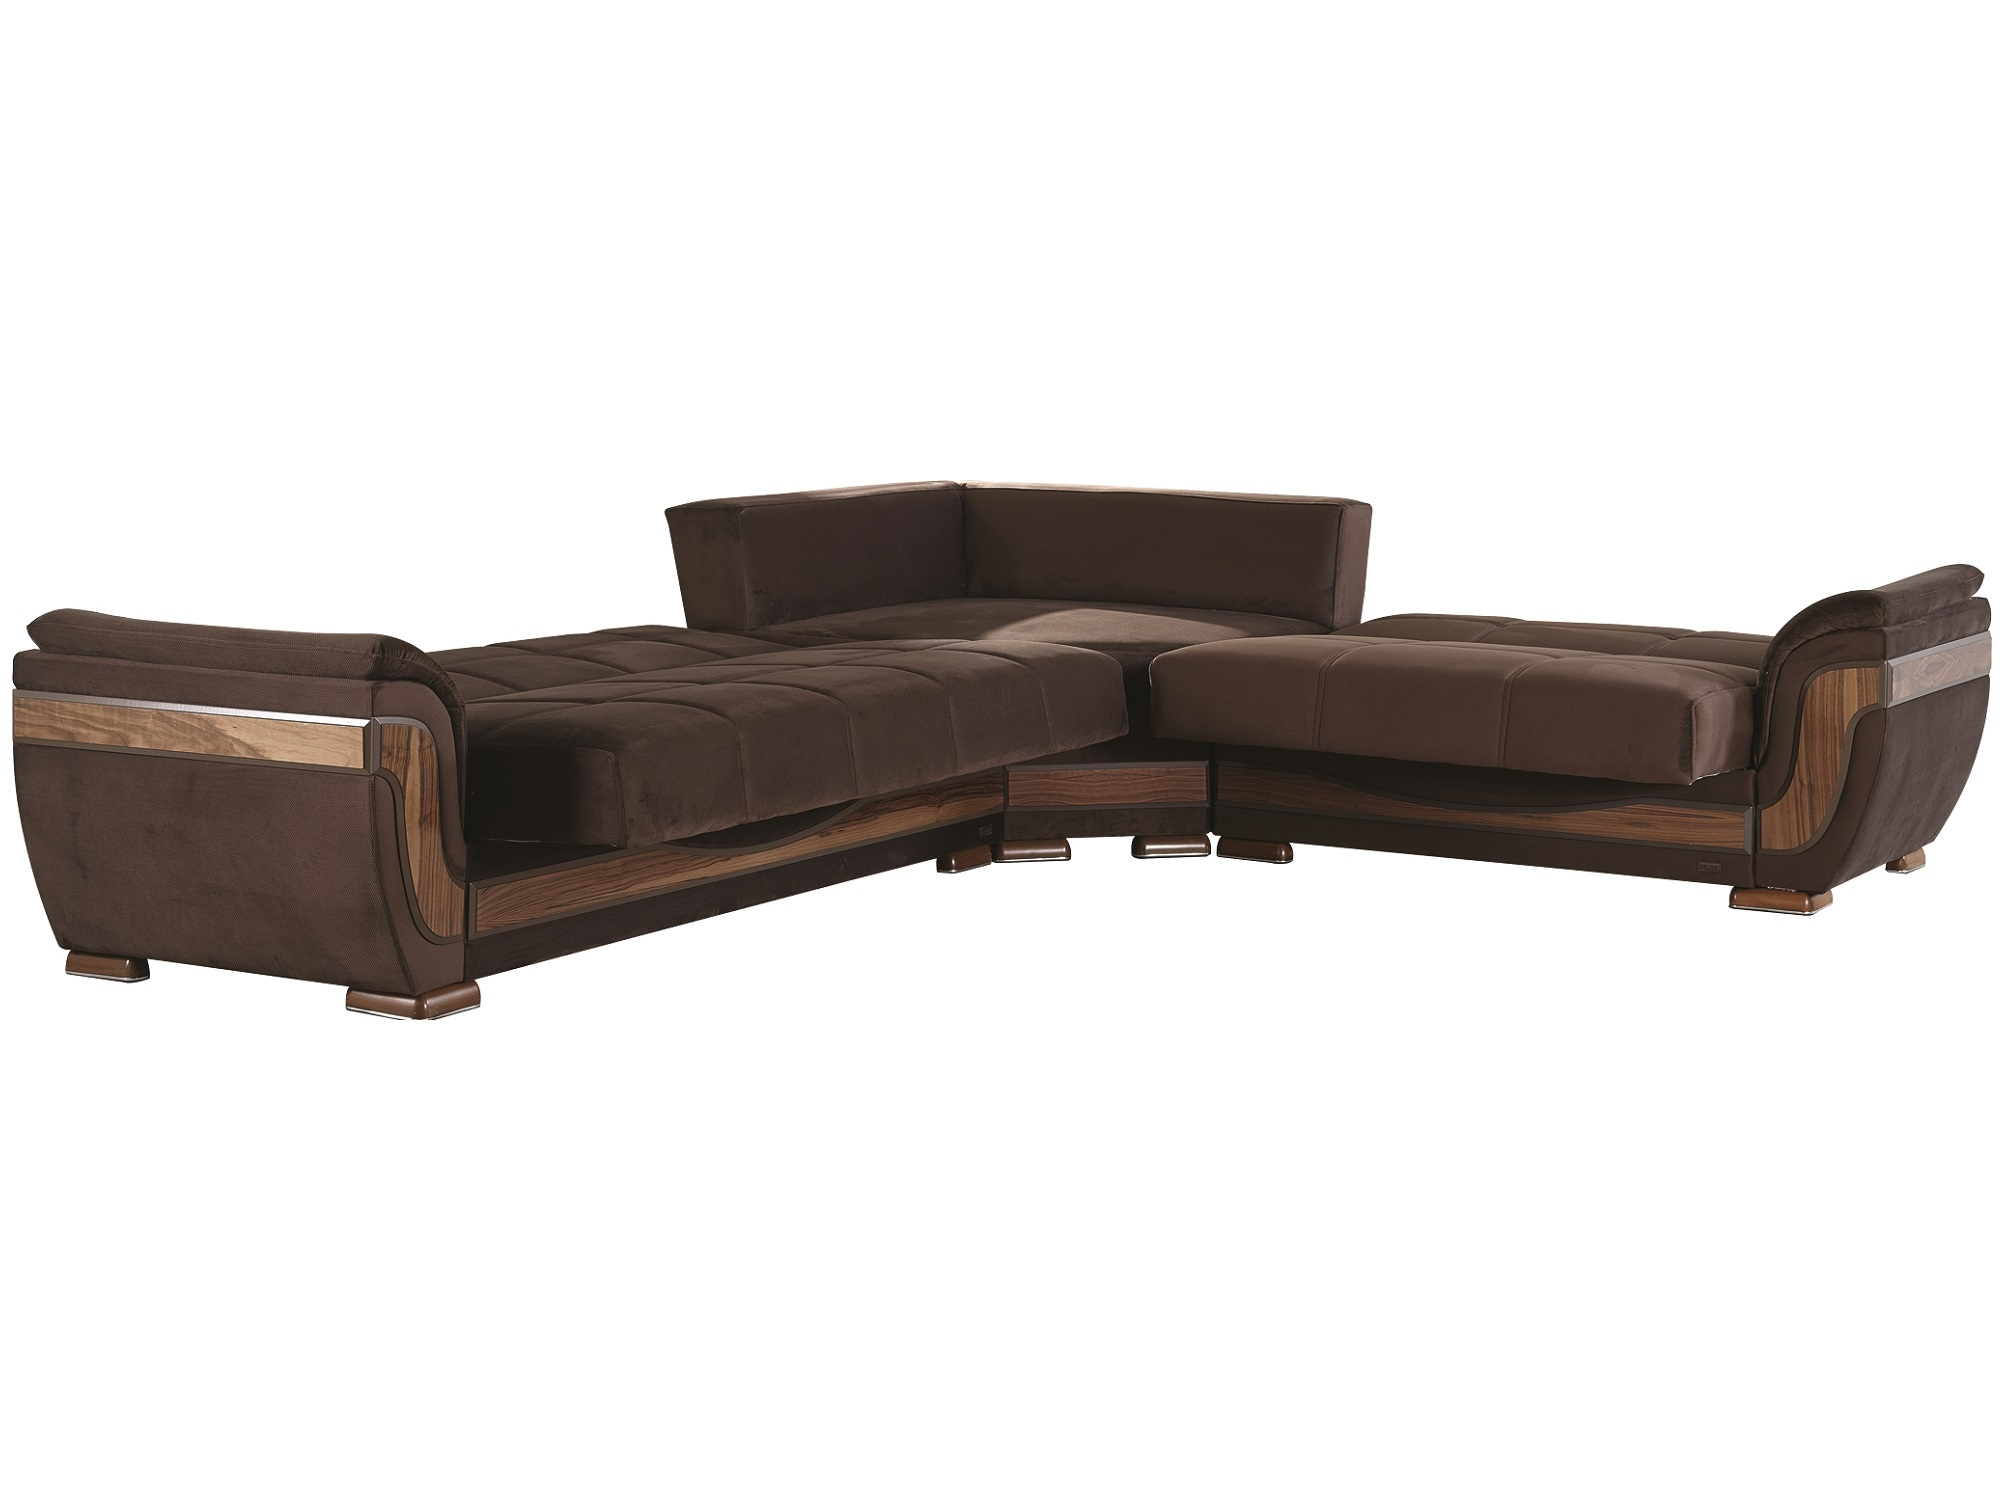 Belmont sectional sofa by empire furniture usa for Furniture usa